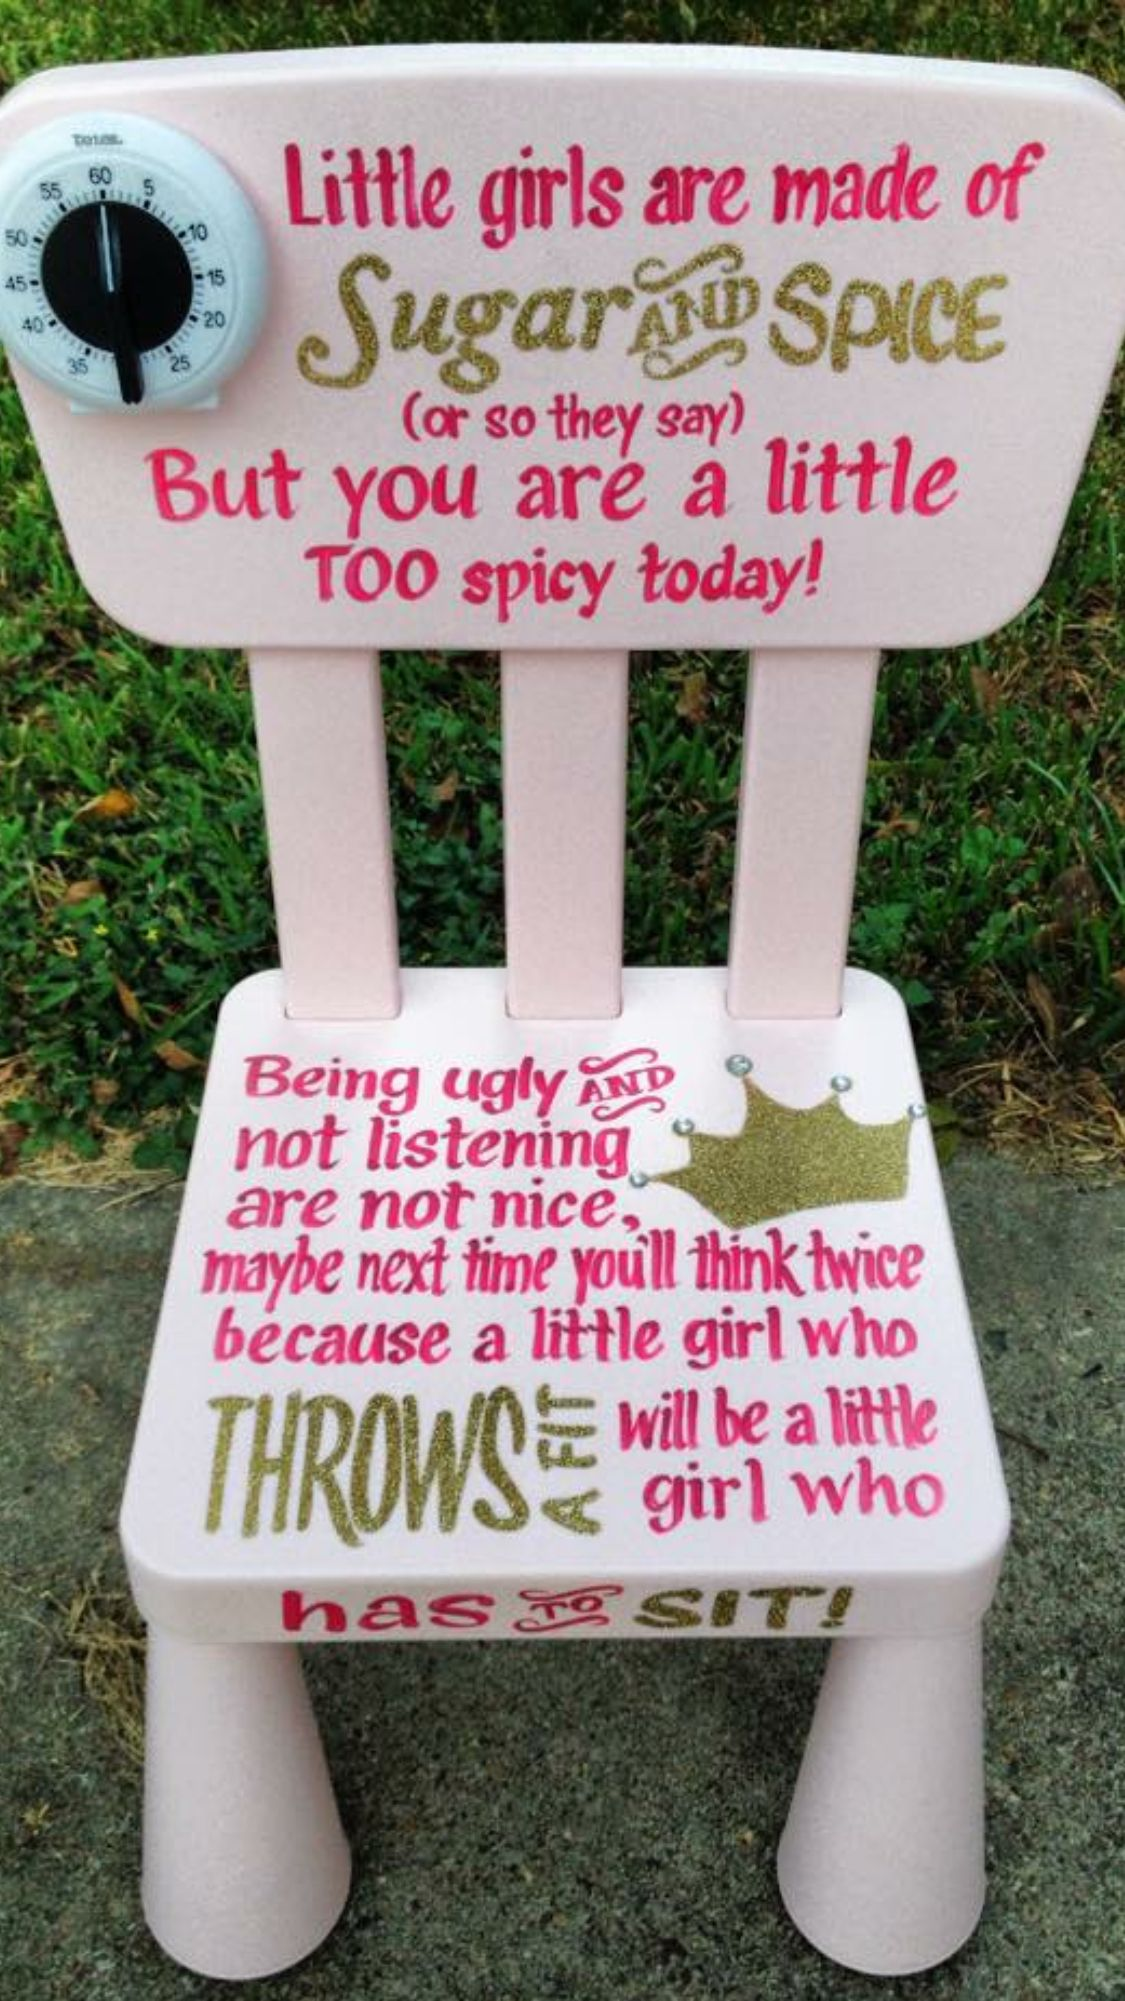 Perfect for if you have a little girl who has to go on time-out. : toddler girl chair - lorbestier.org